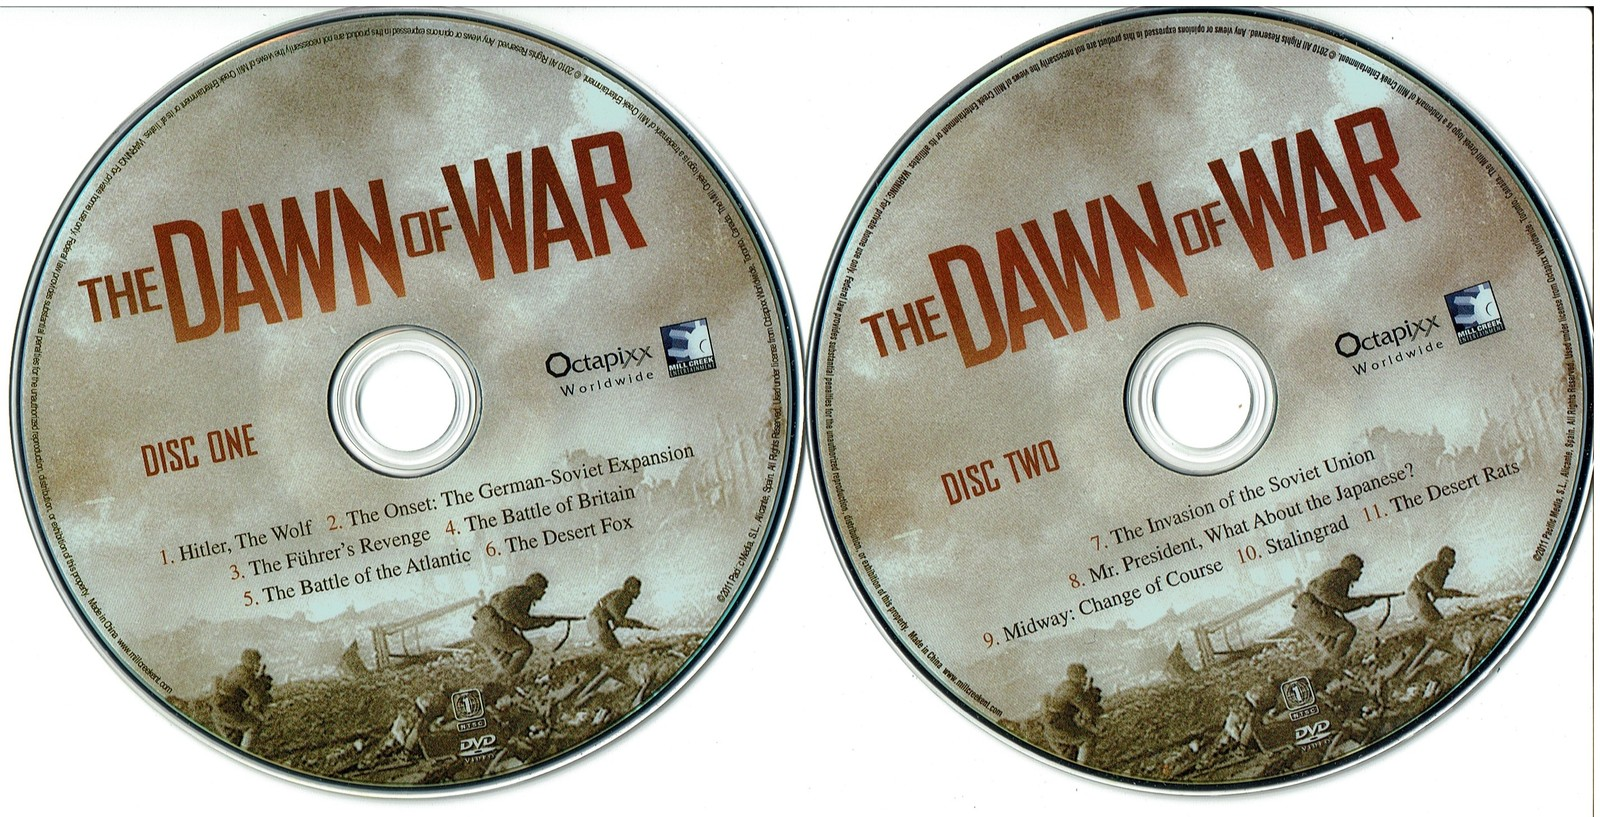 The Dawn of War: The Early Battles of WWII (WW2) DVD 2011, Documentary 9.5 hours